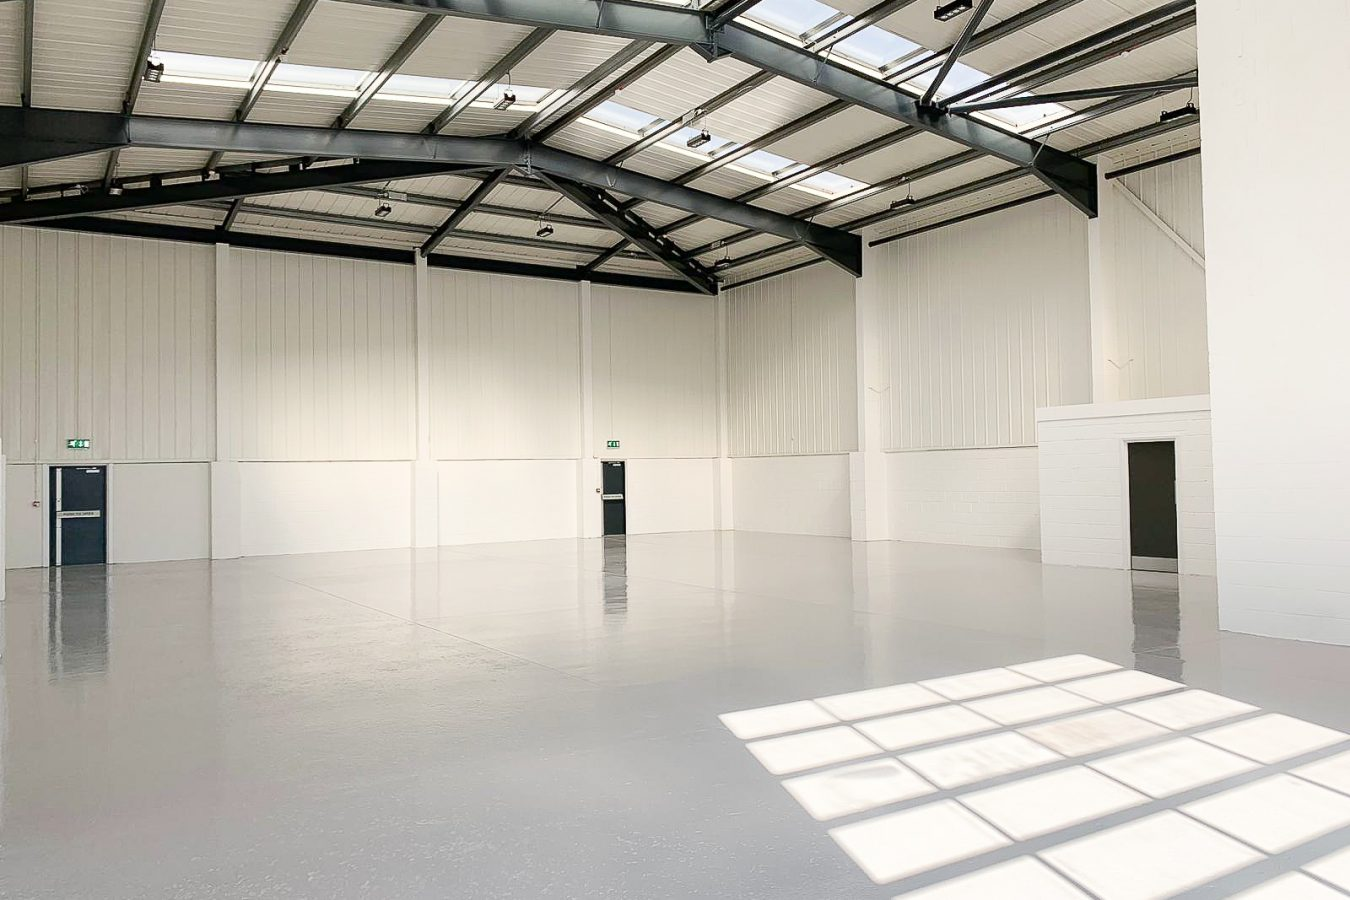 Industrial roof refurbishment on the structure and new flooring throughout the space in neutral colours.